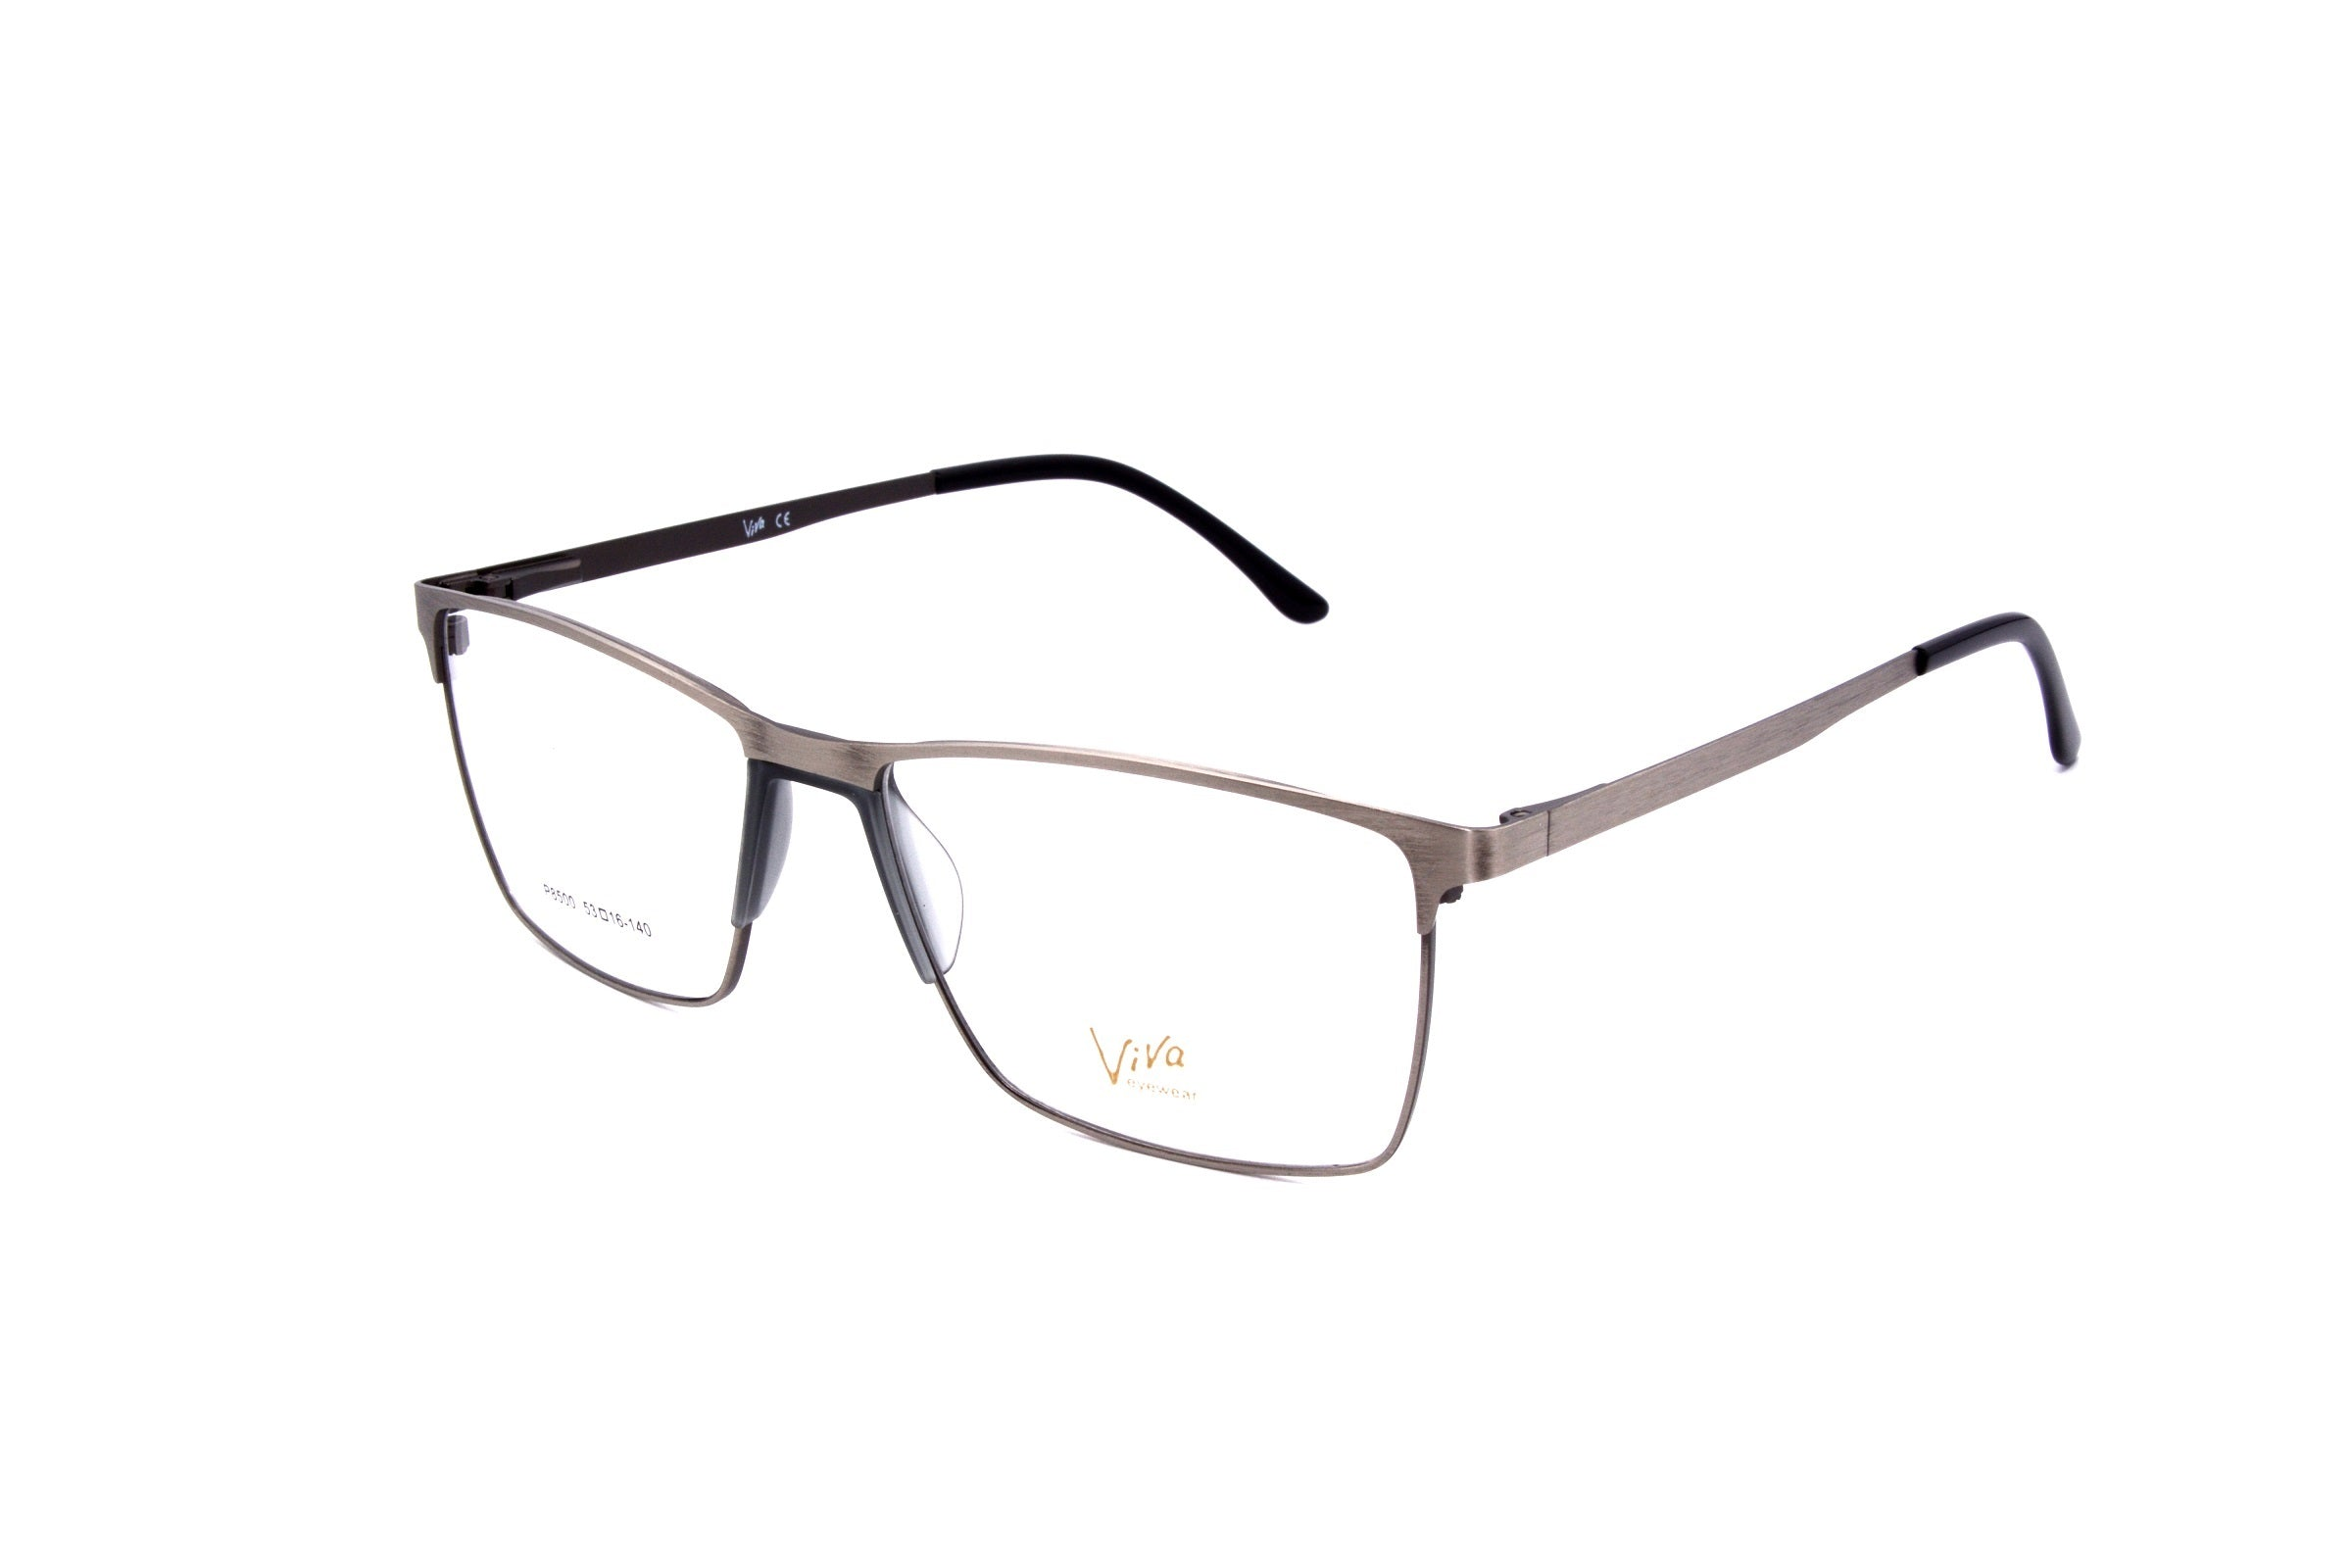 Viva eyewear 8500, M2 - Optics Trading